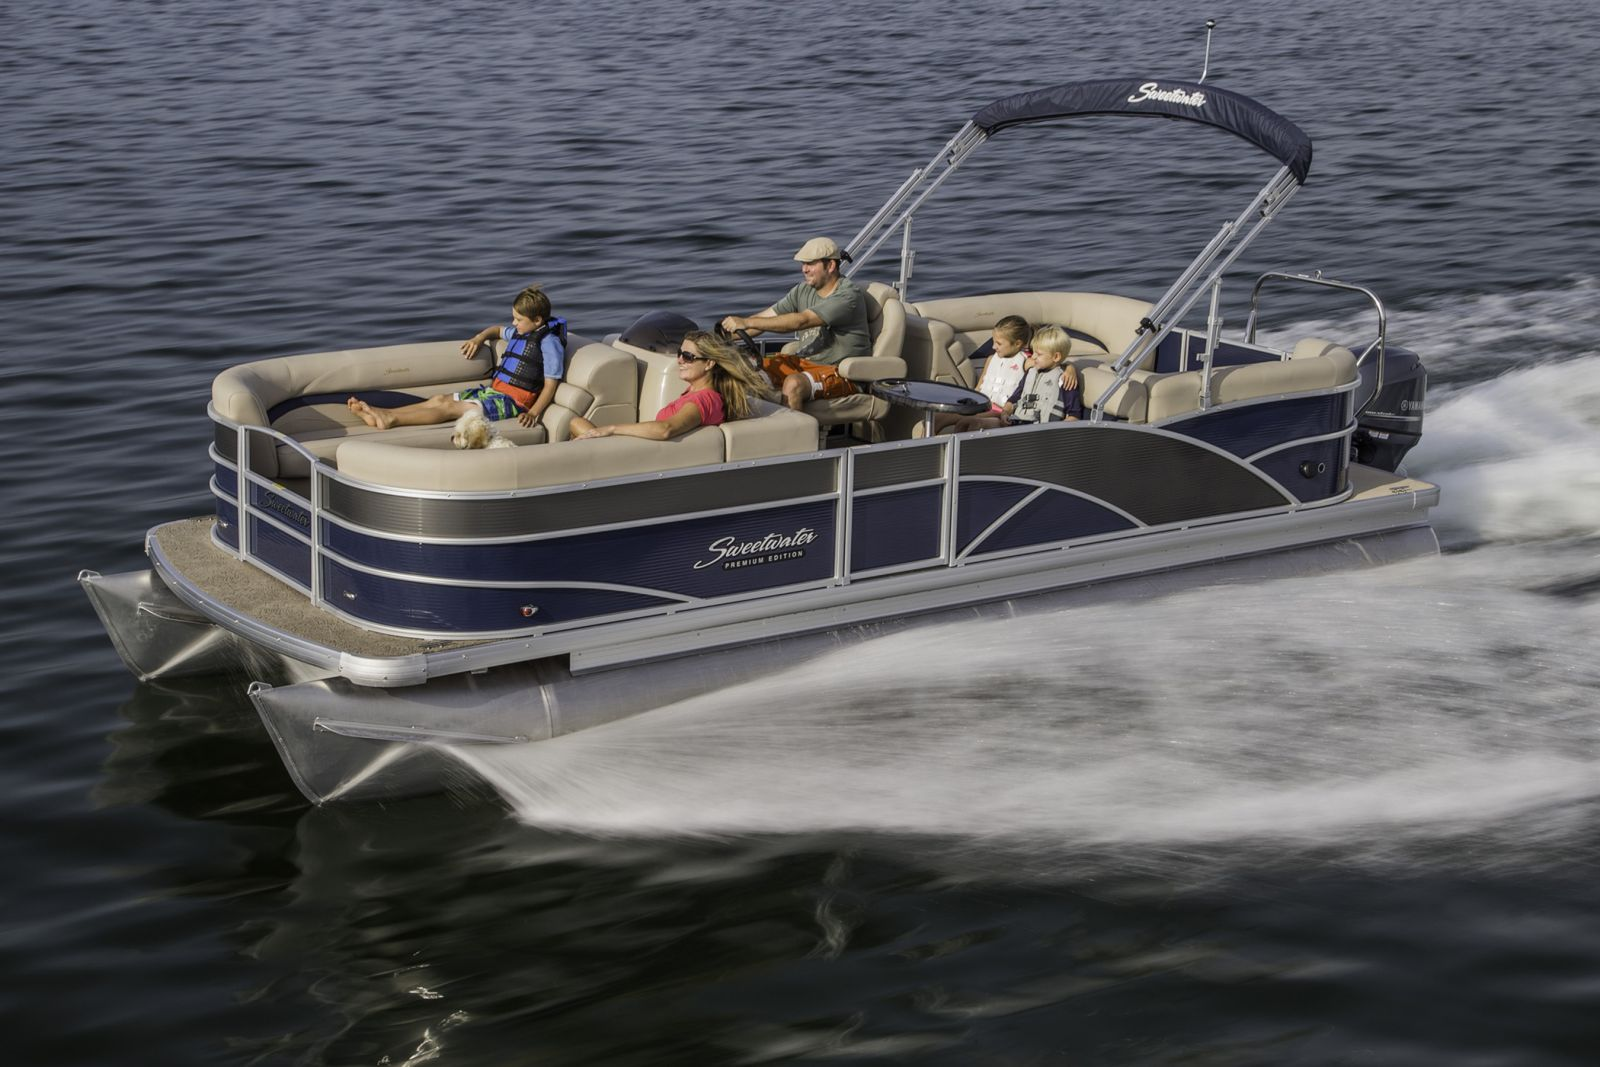 904 Happy Hour - Article - The new Freedom Boat Club fleet